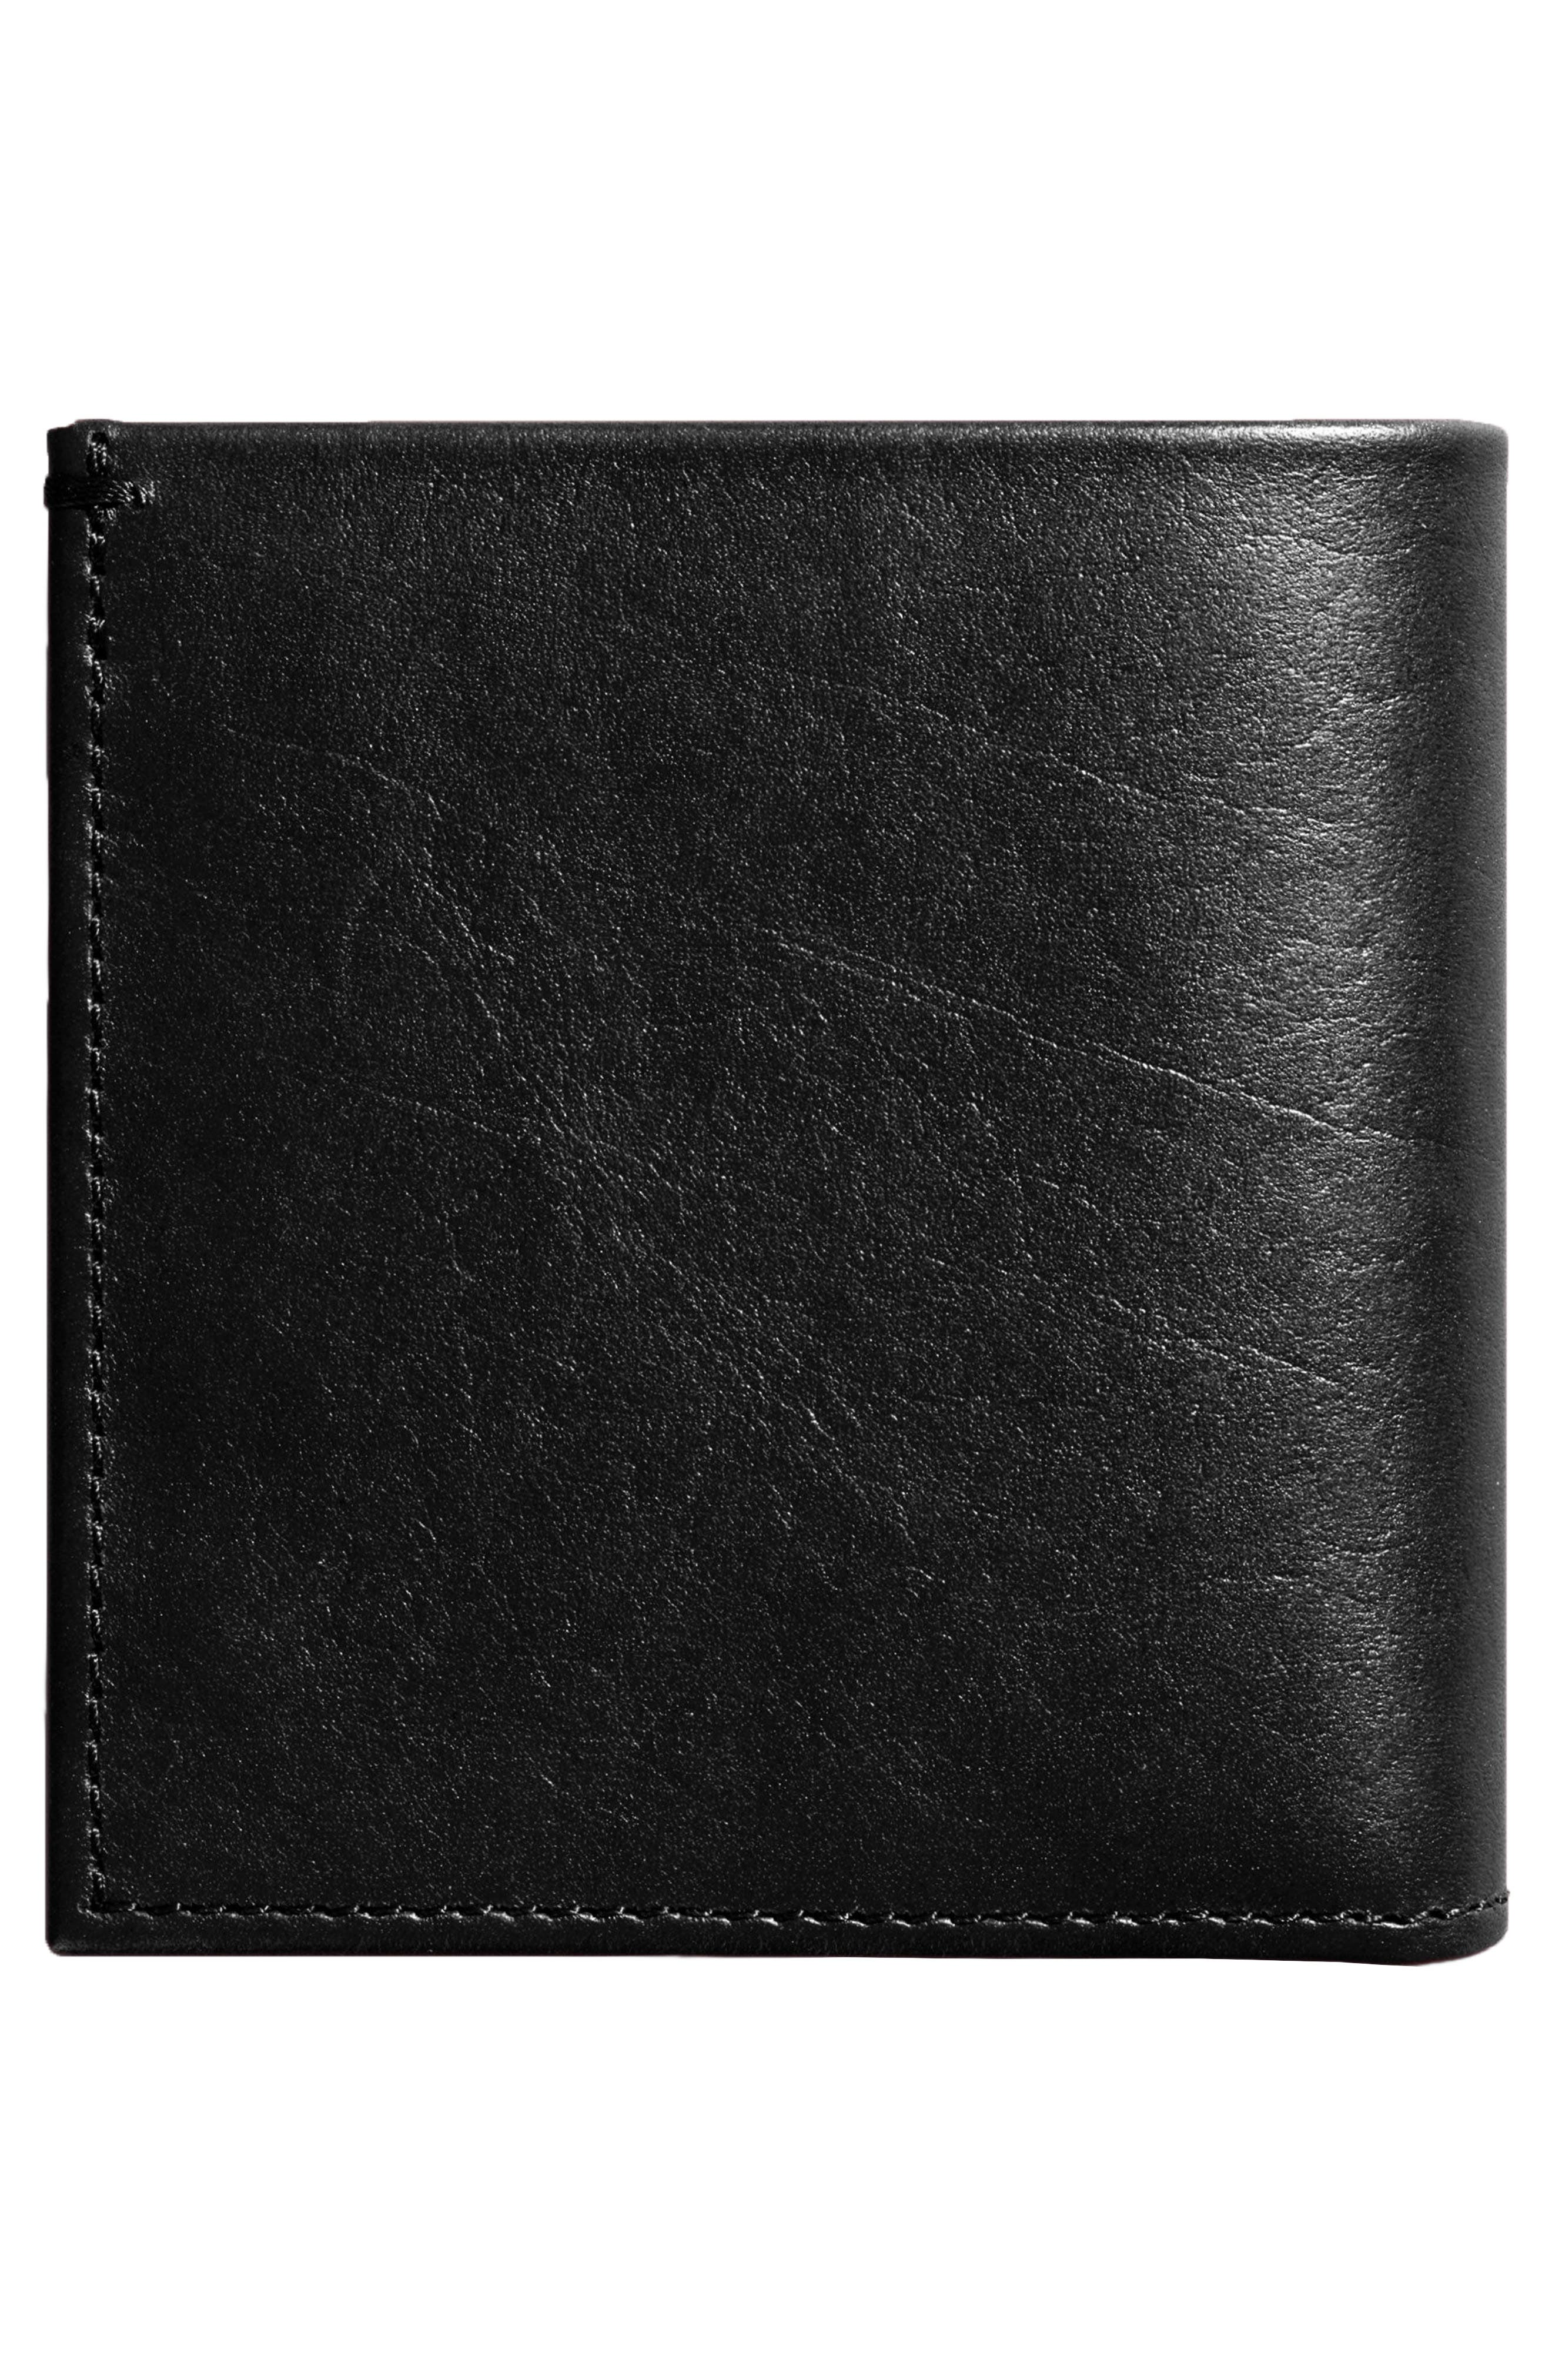 Square Bifold Leather Wallet,                             Alternate thumbnail 2, color,                             001